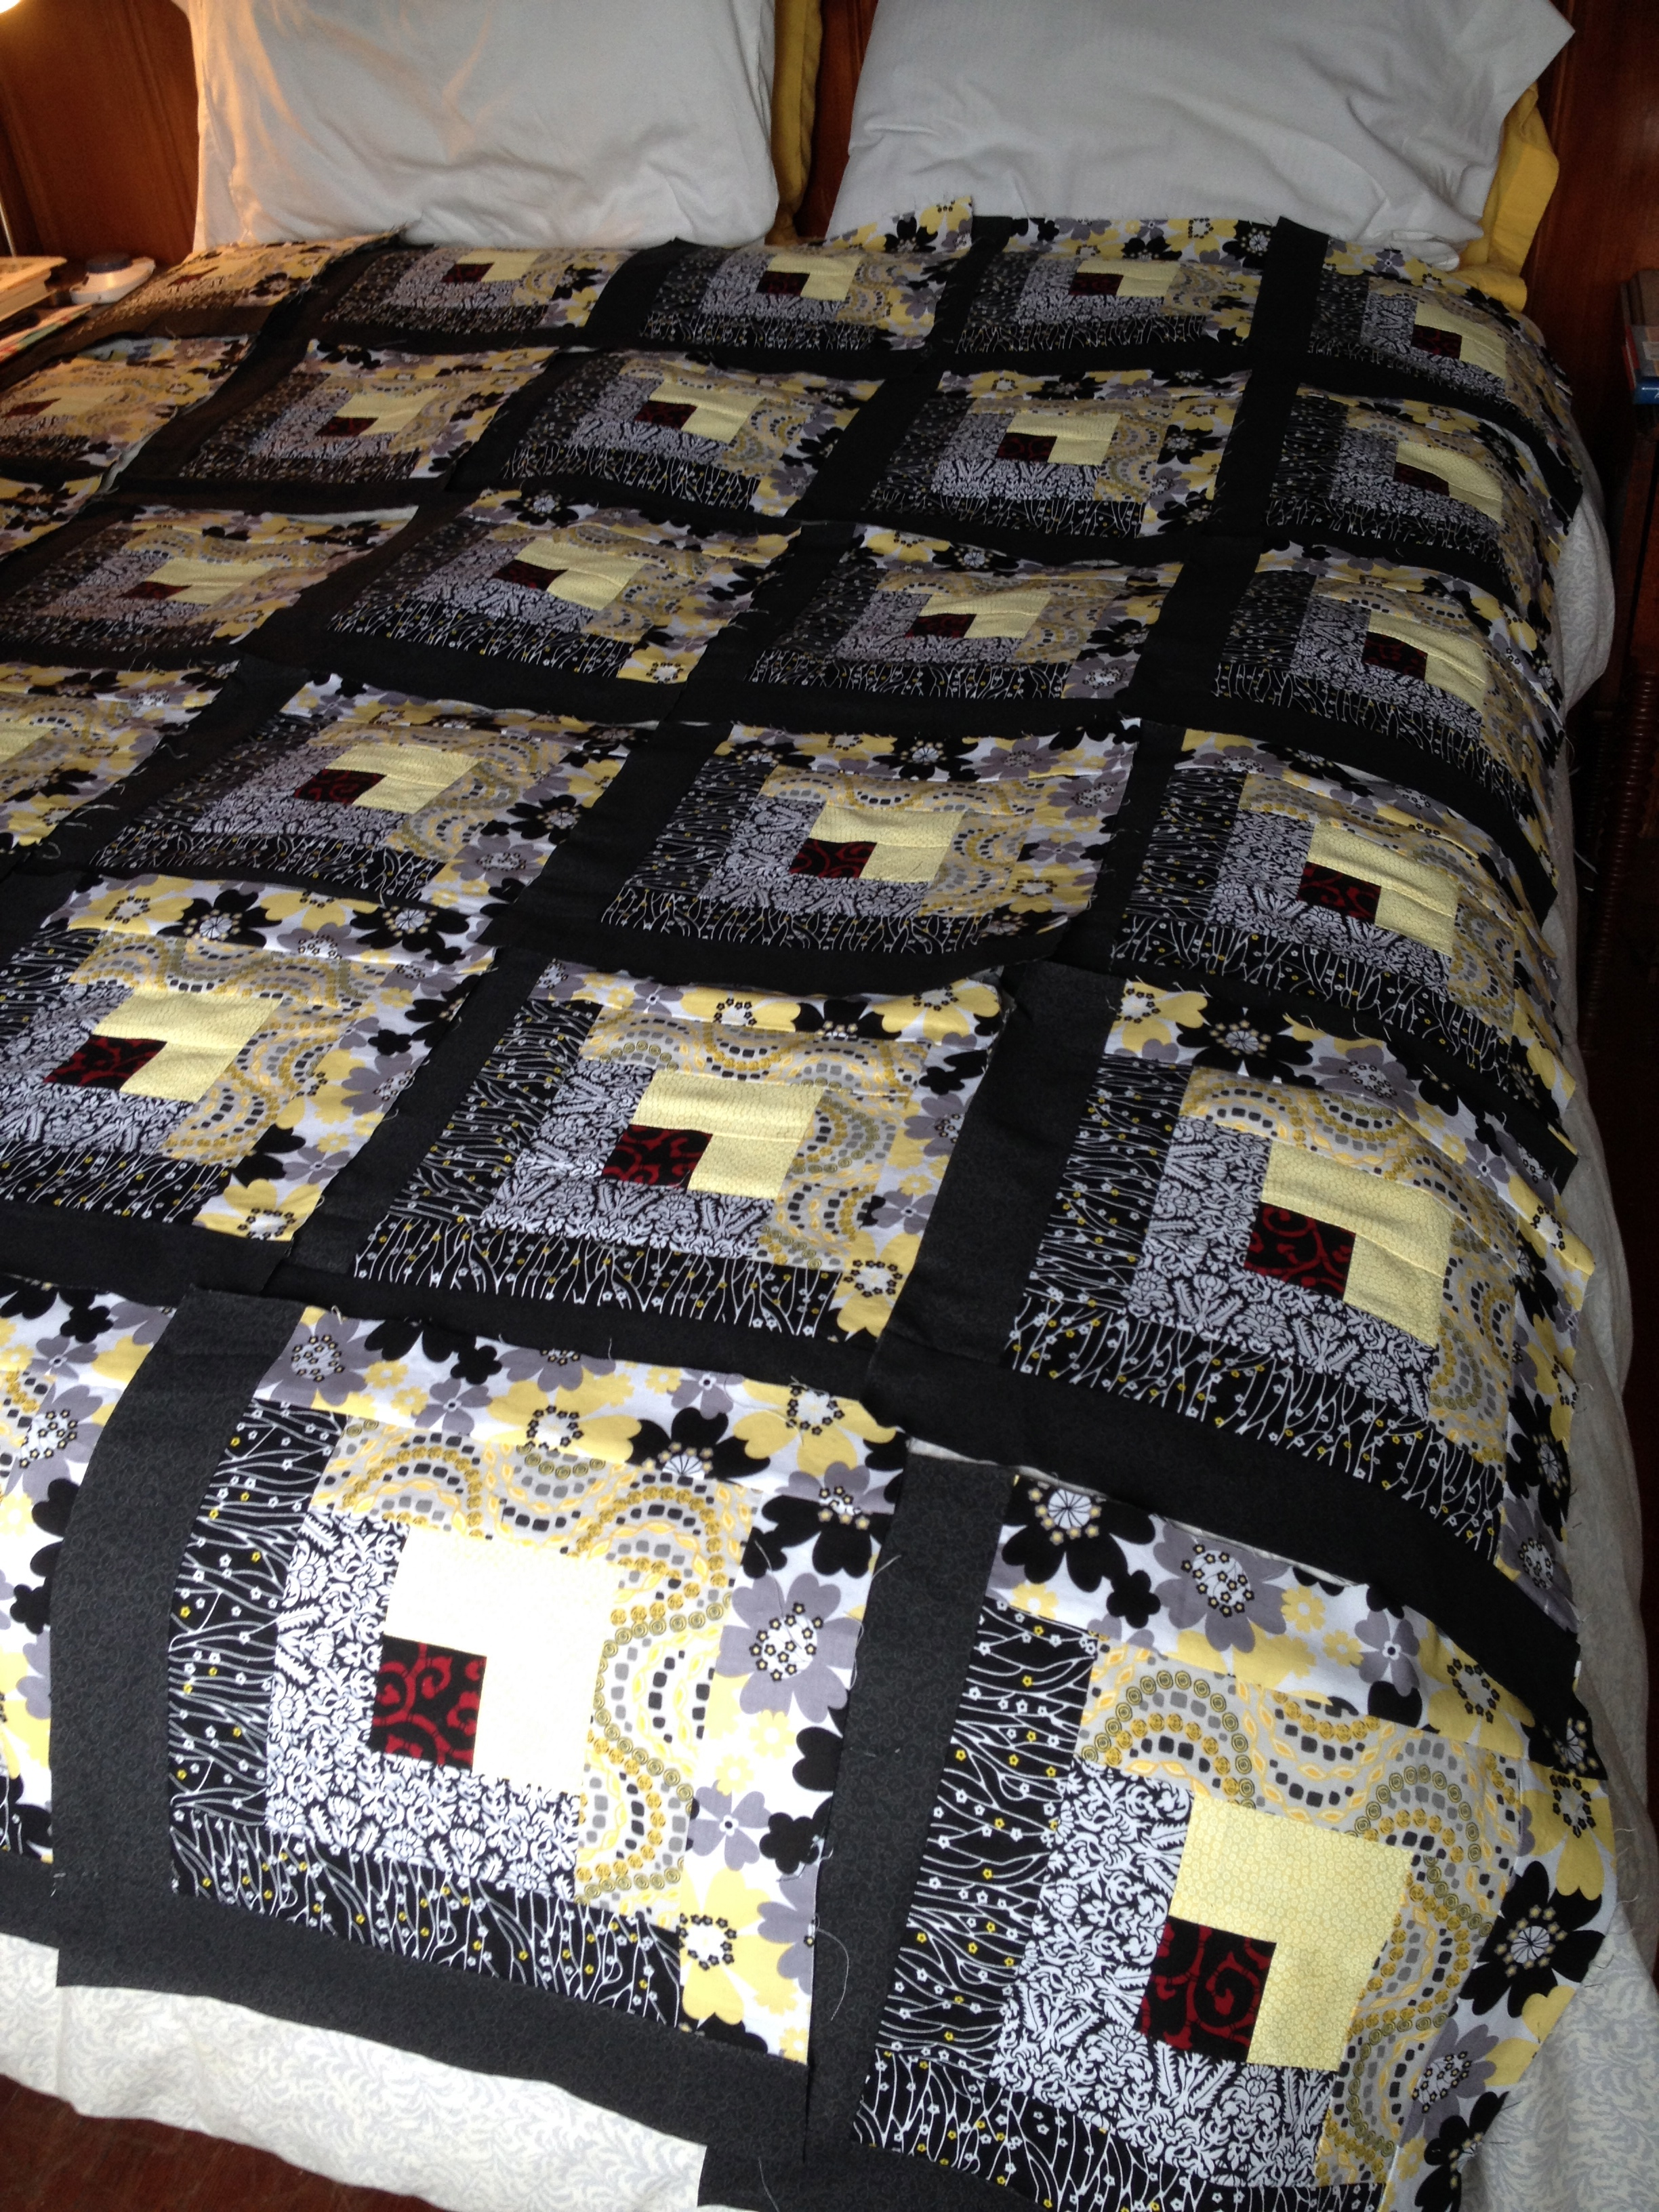 And then there's this project! A king-size Log Cabin quilt!